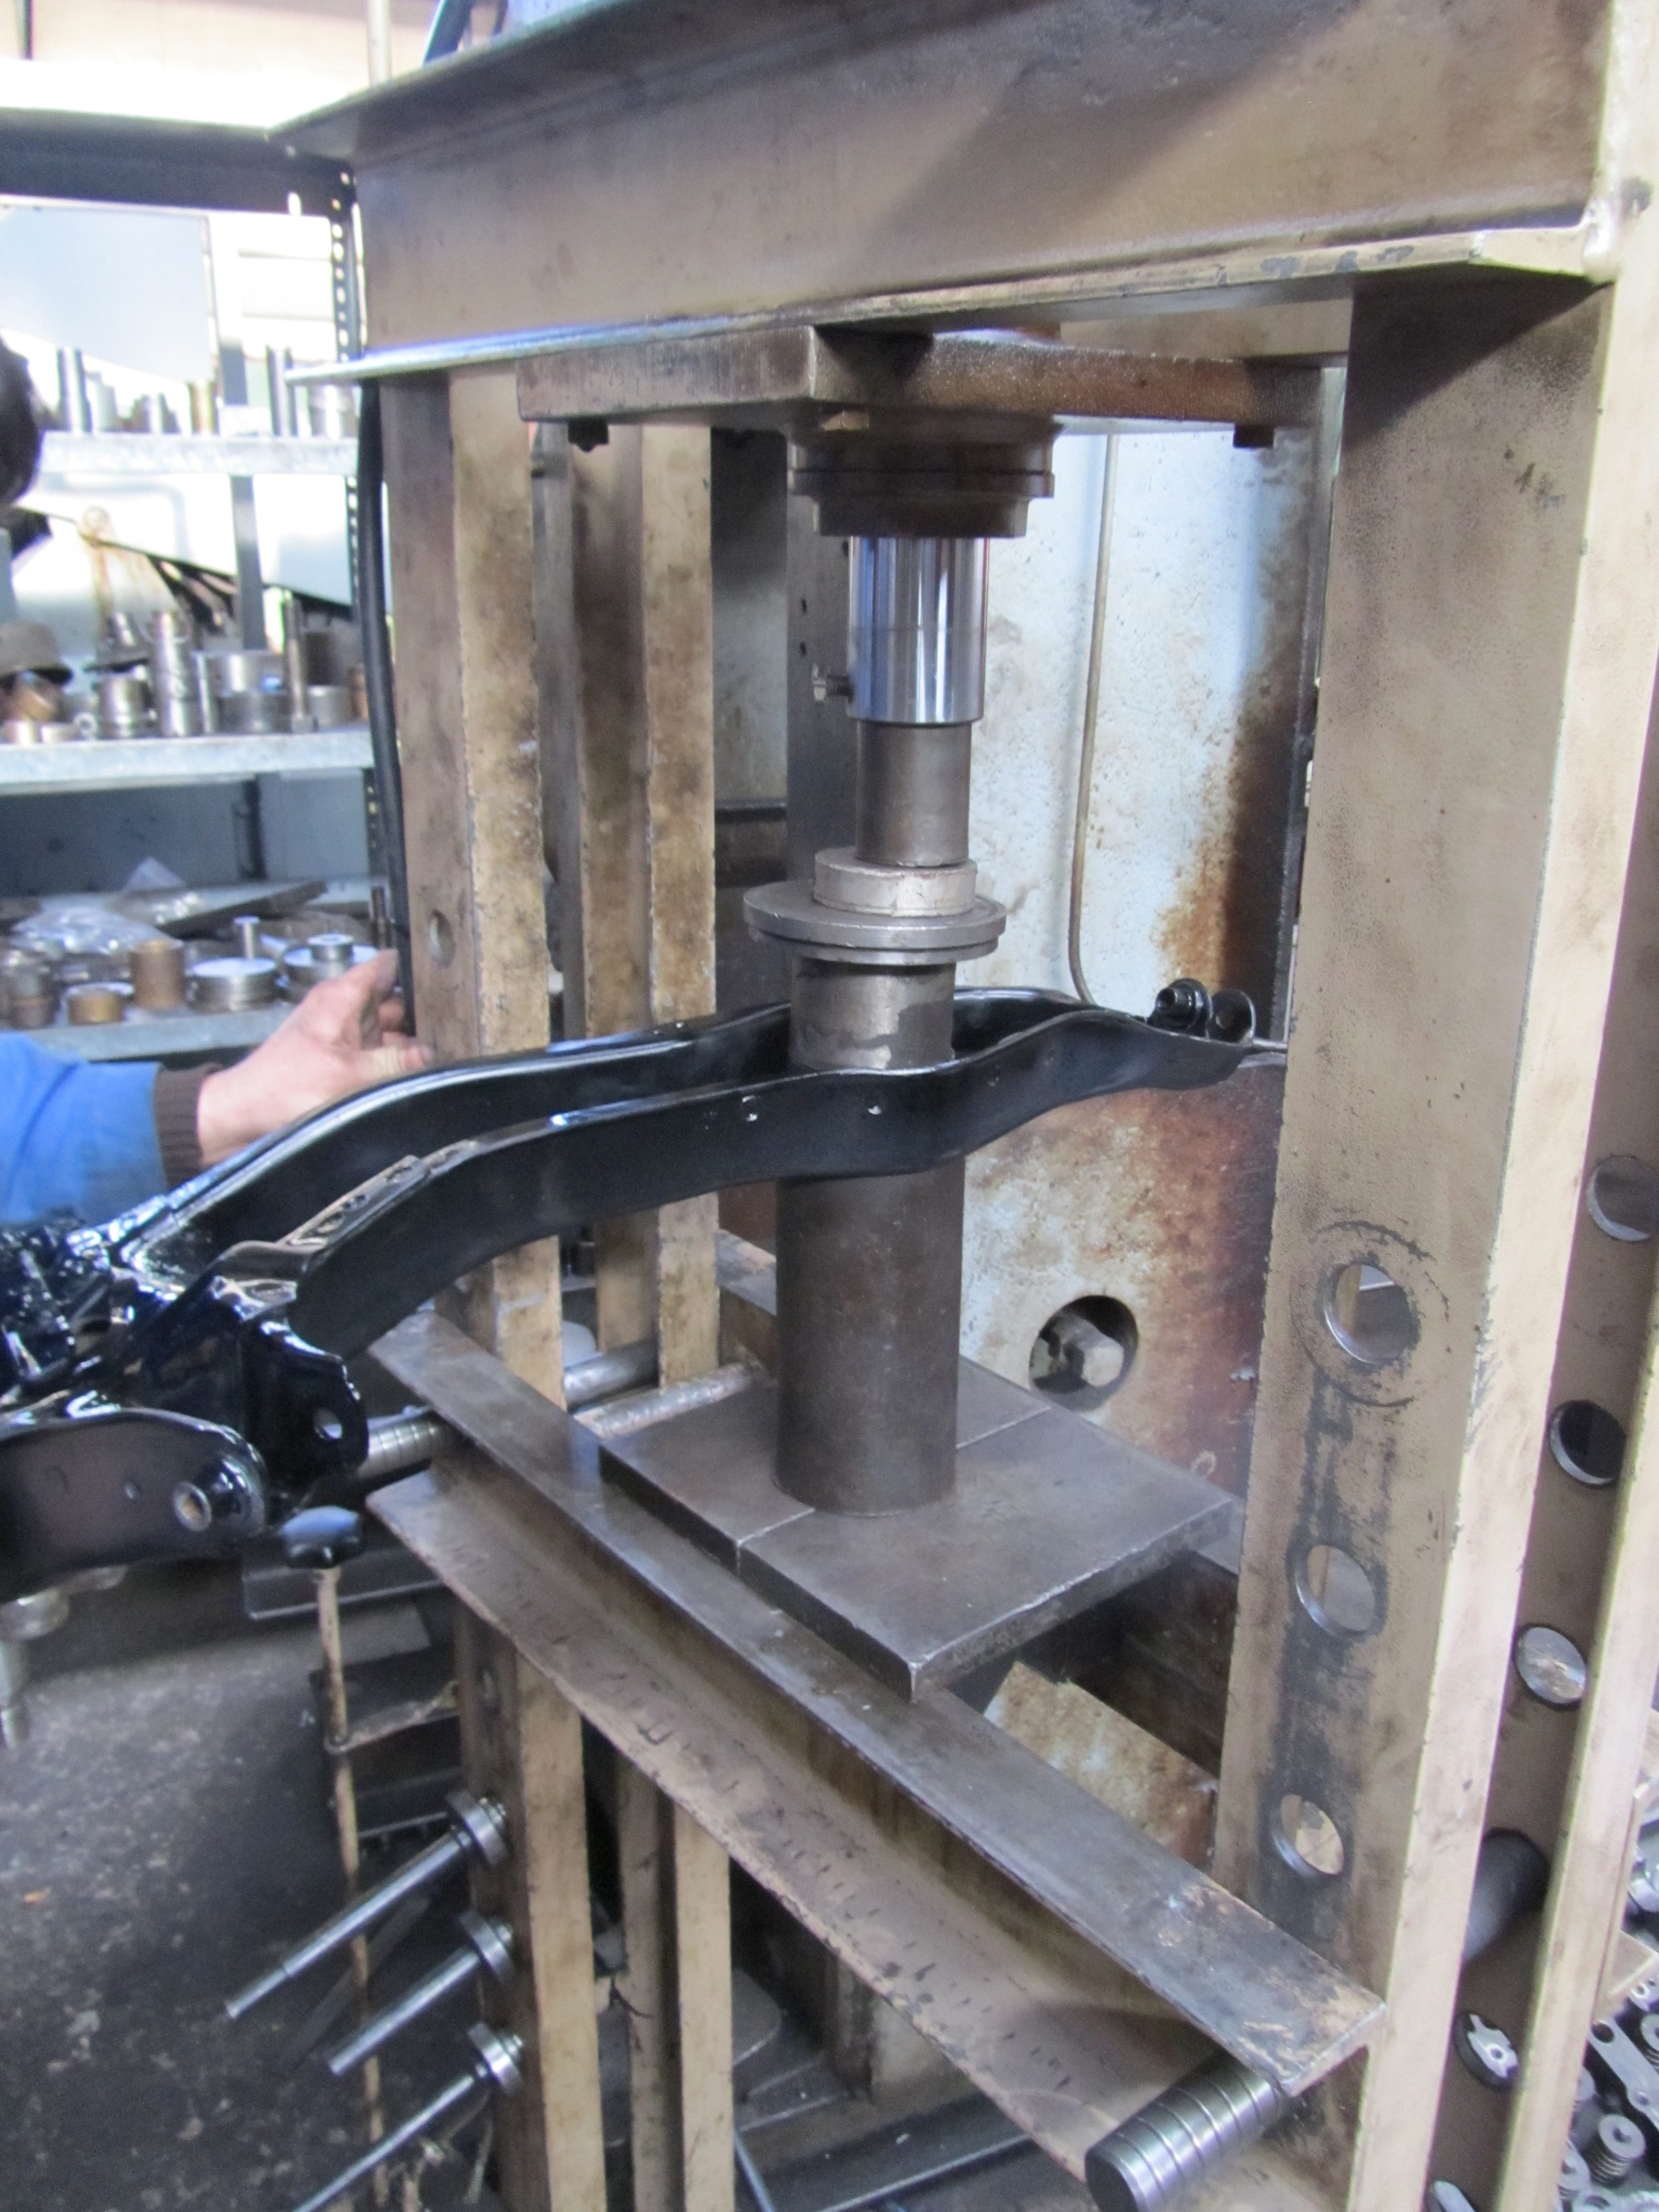 3. Once that was done, we used a press to get the old trailing arm bearings out and get their new Spoon counterparts in.